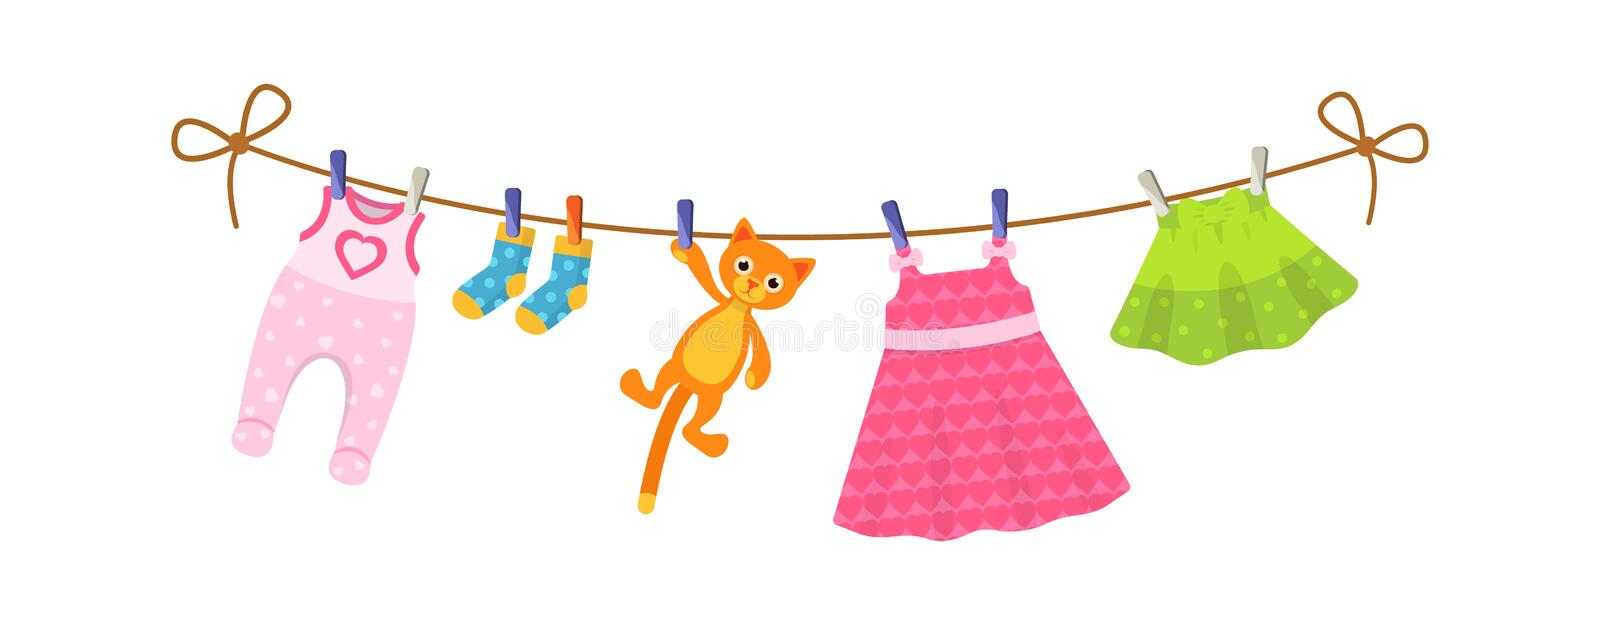 Set of baby clothes for children. Clothes for newborn girl. Kids clothes on clothesline. Drying children`s clothes and accessories after washing on a rope. Baby vector illustration